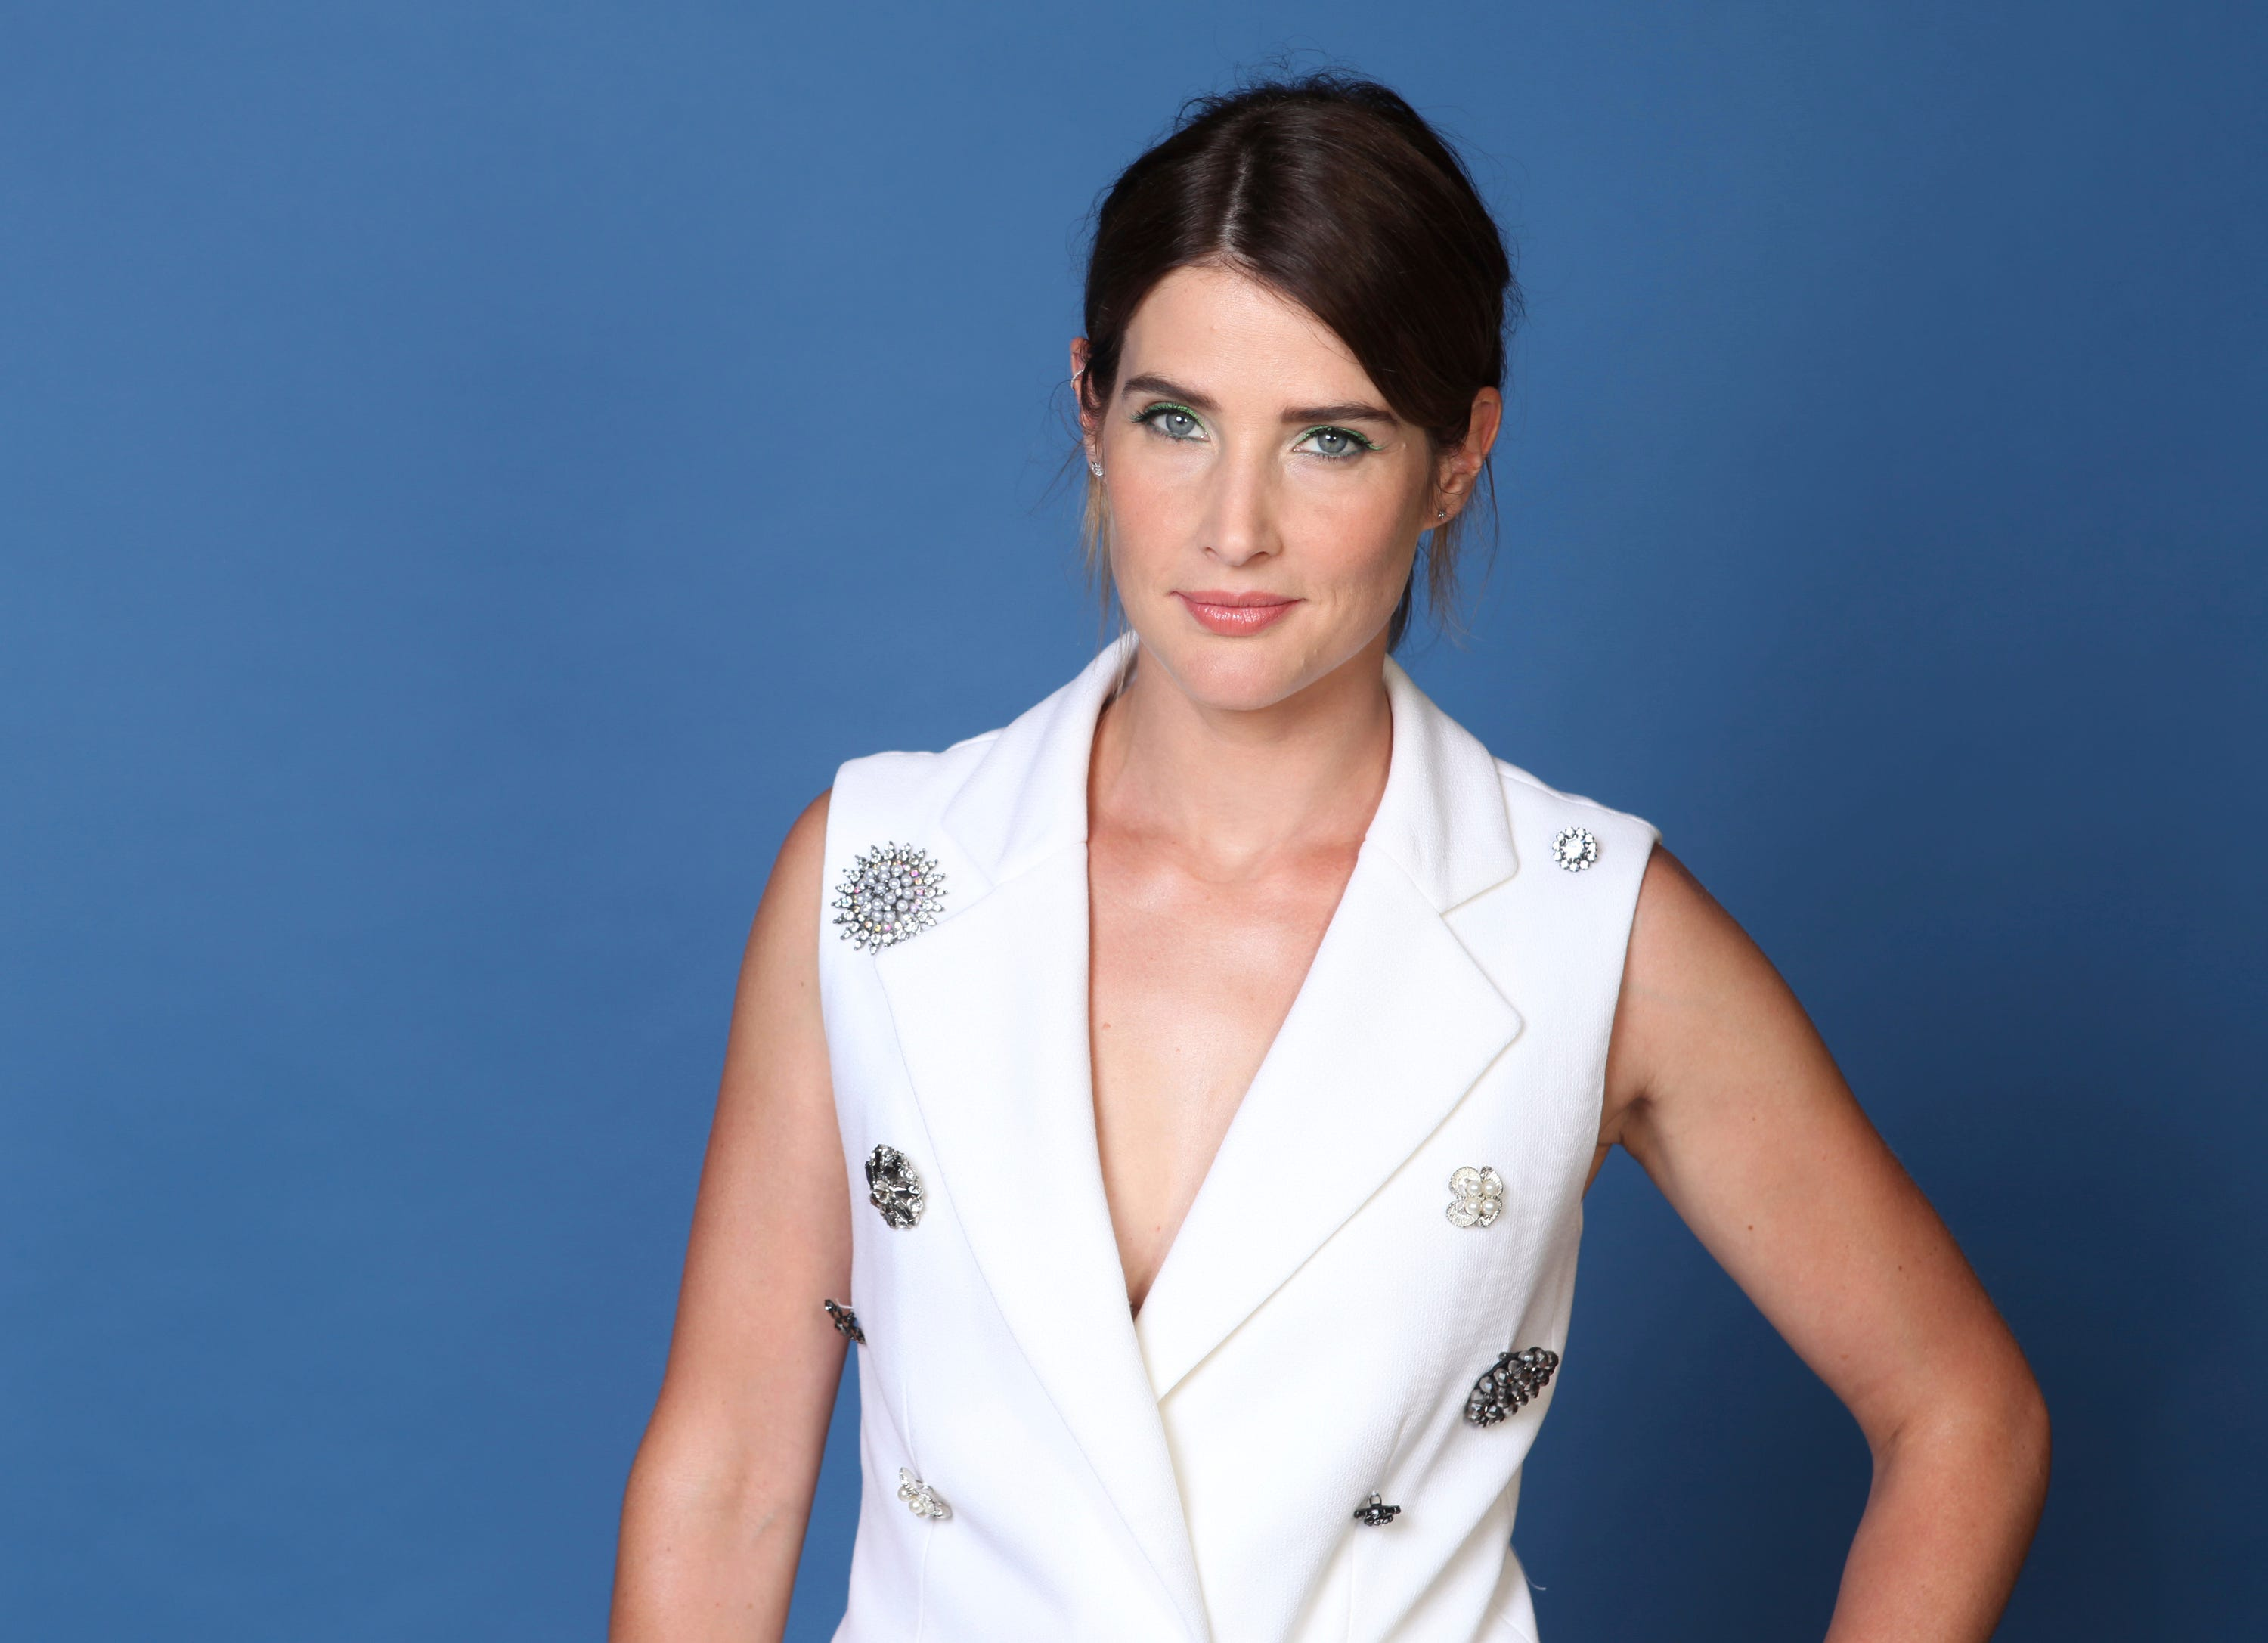 Cobie Smulders Says Going Through Cancer Made Her Stronger